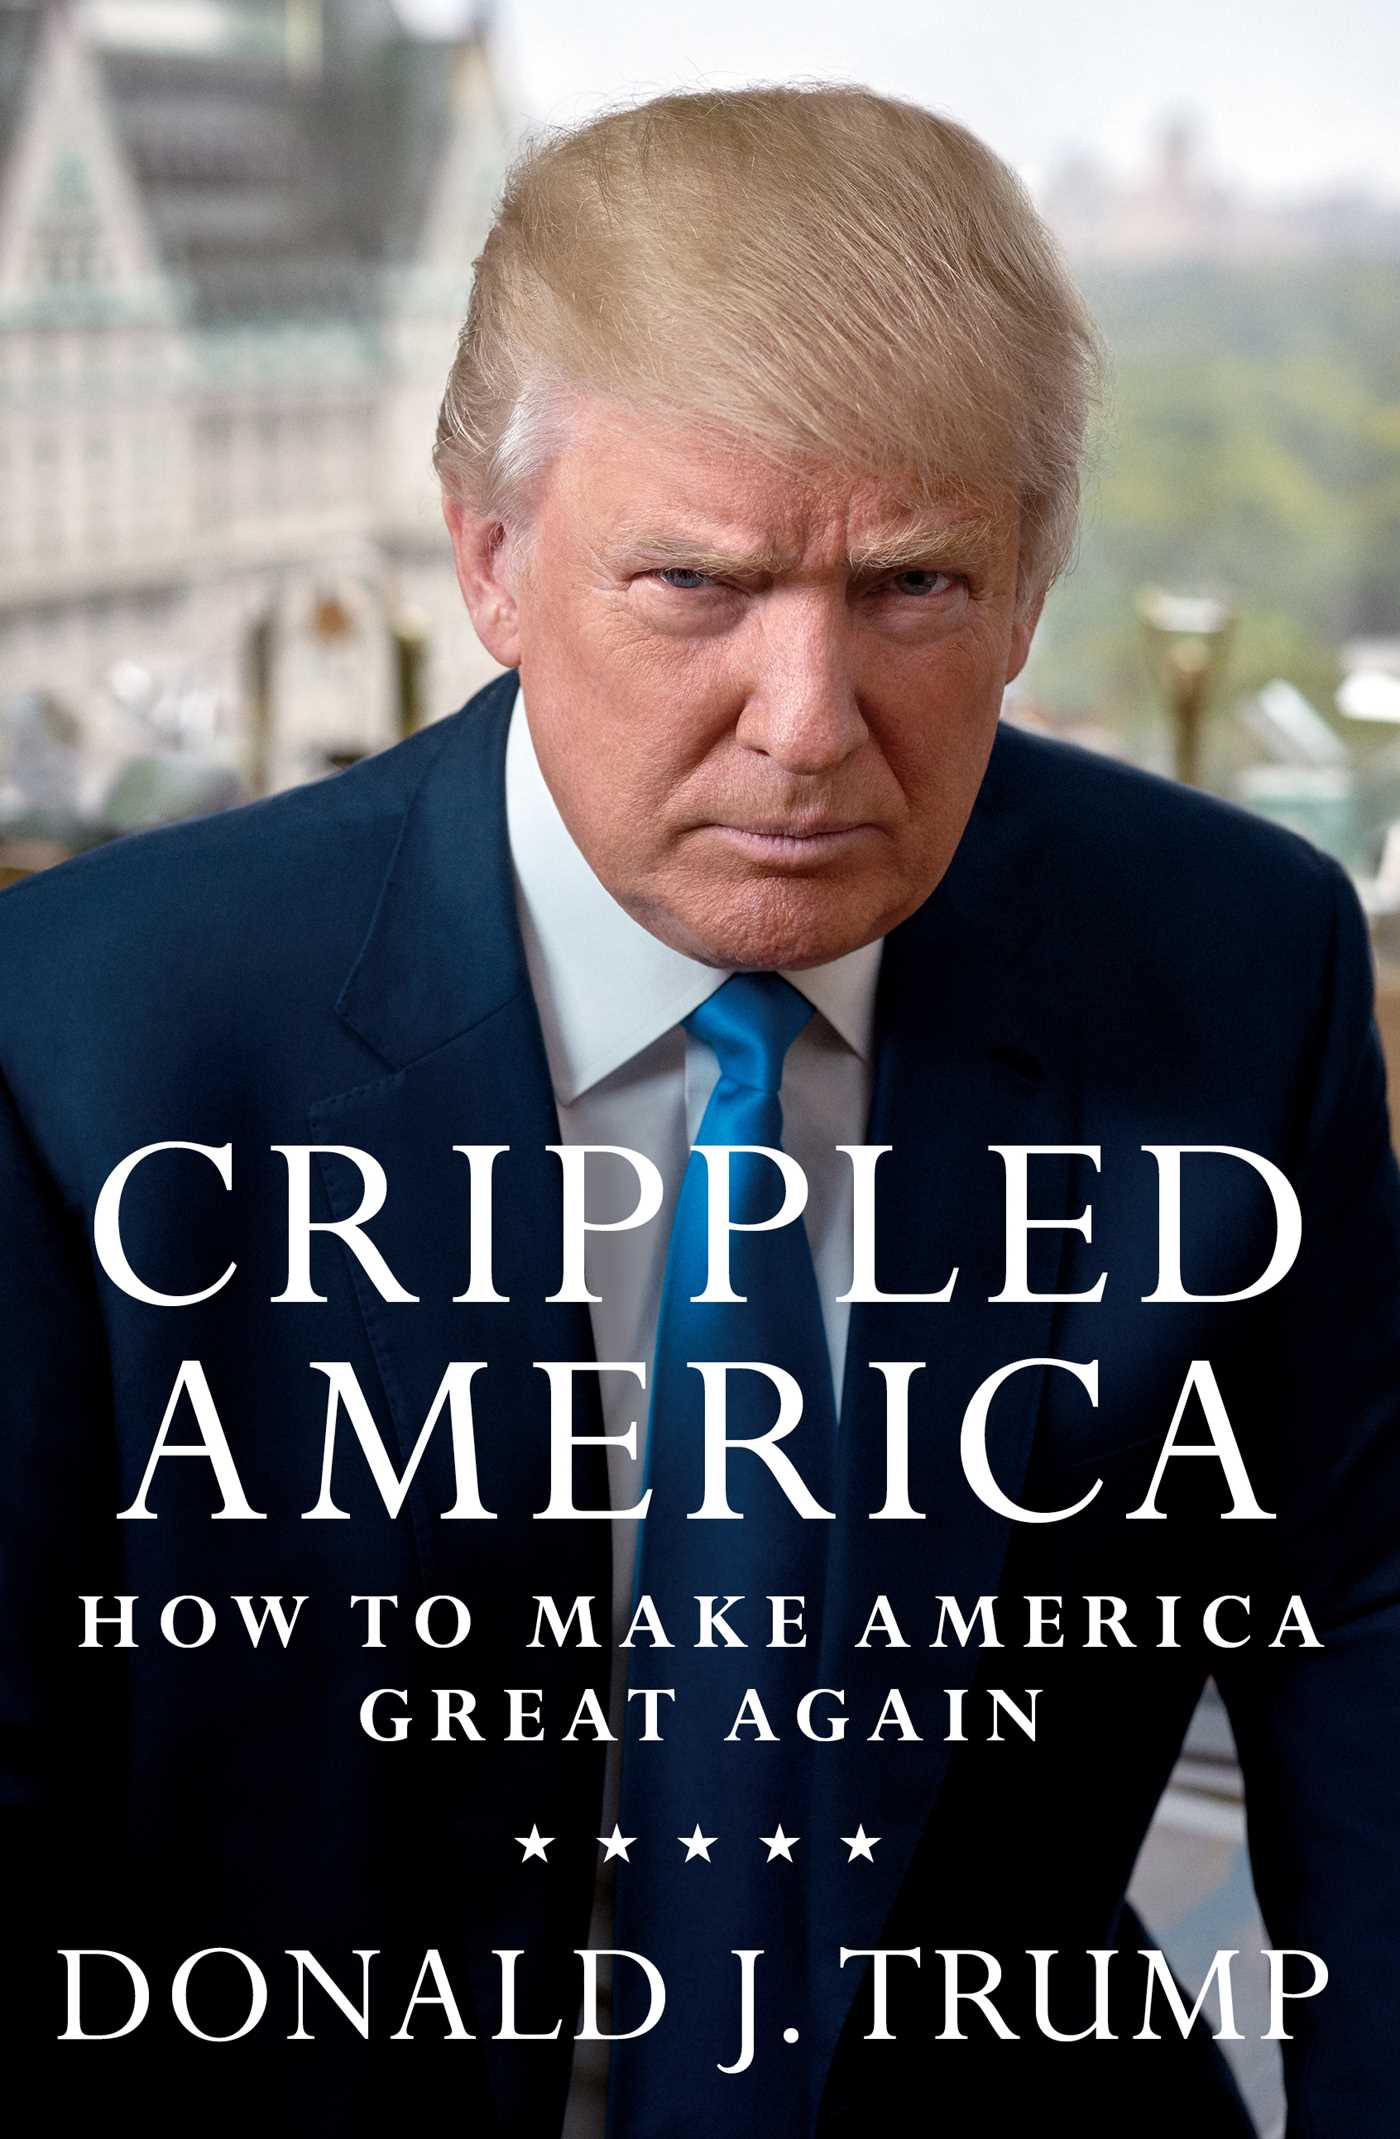 Crippled america 9781501137969 hr